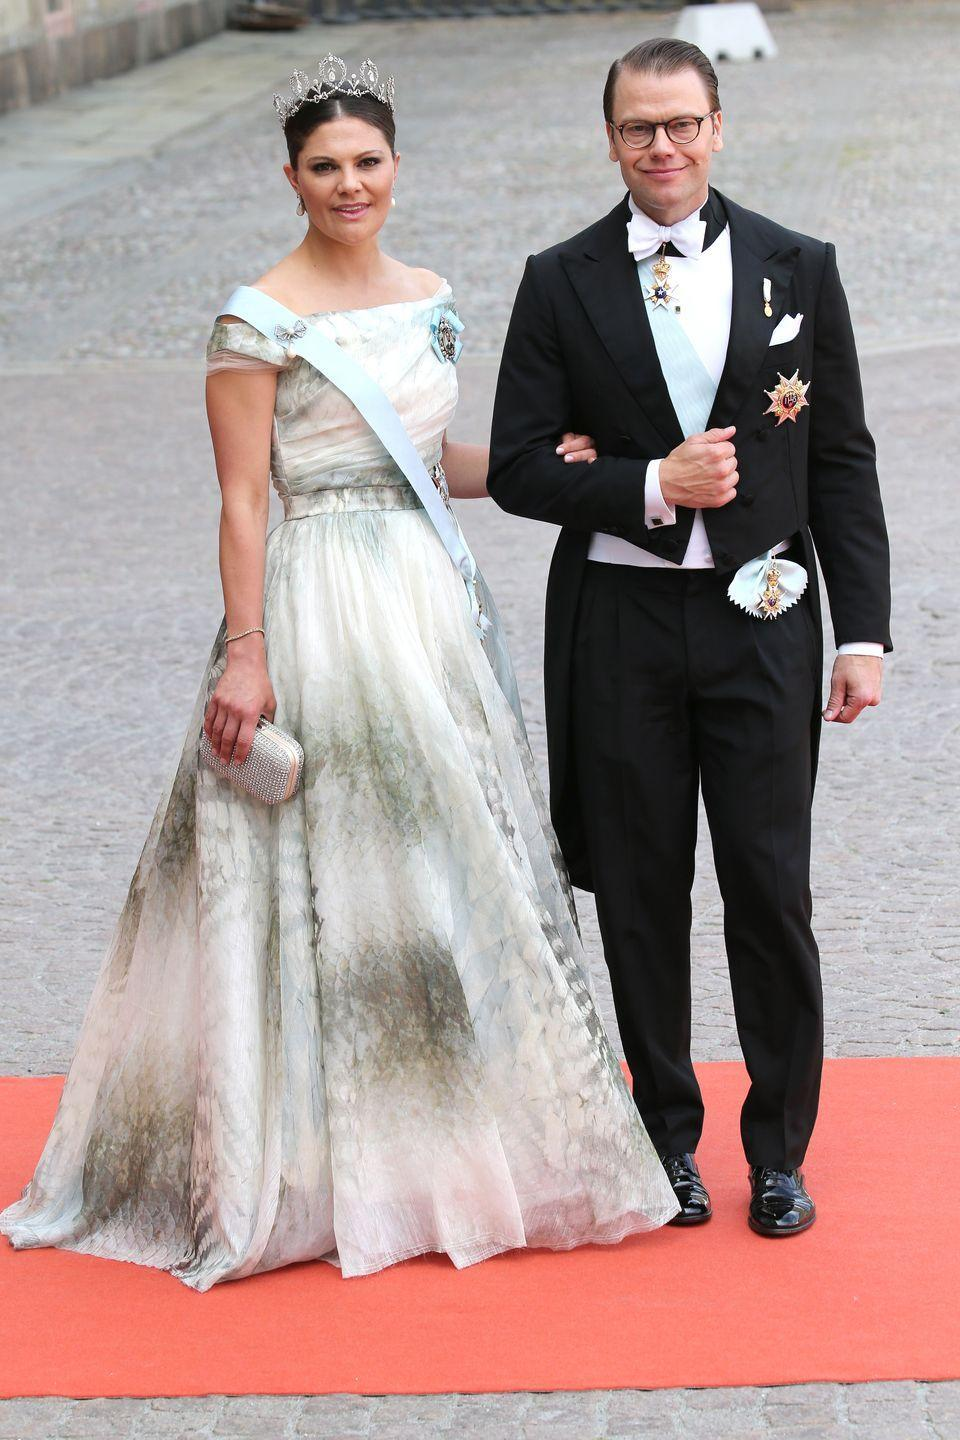 <p>Not all Cinderella stories mean that a woman gets swept off her feet by a prince, and such was the case of Crown Princess Victoria of Sweden's marriage to her former personal trainer Daniel Westling. The pair wed in Stockholm in 2010, and Westling's new royal title became Prince Daniel, Duke of Västergötland. </p>